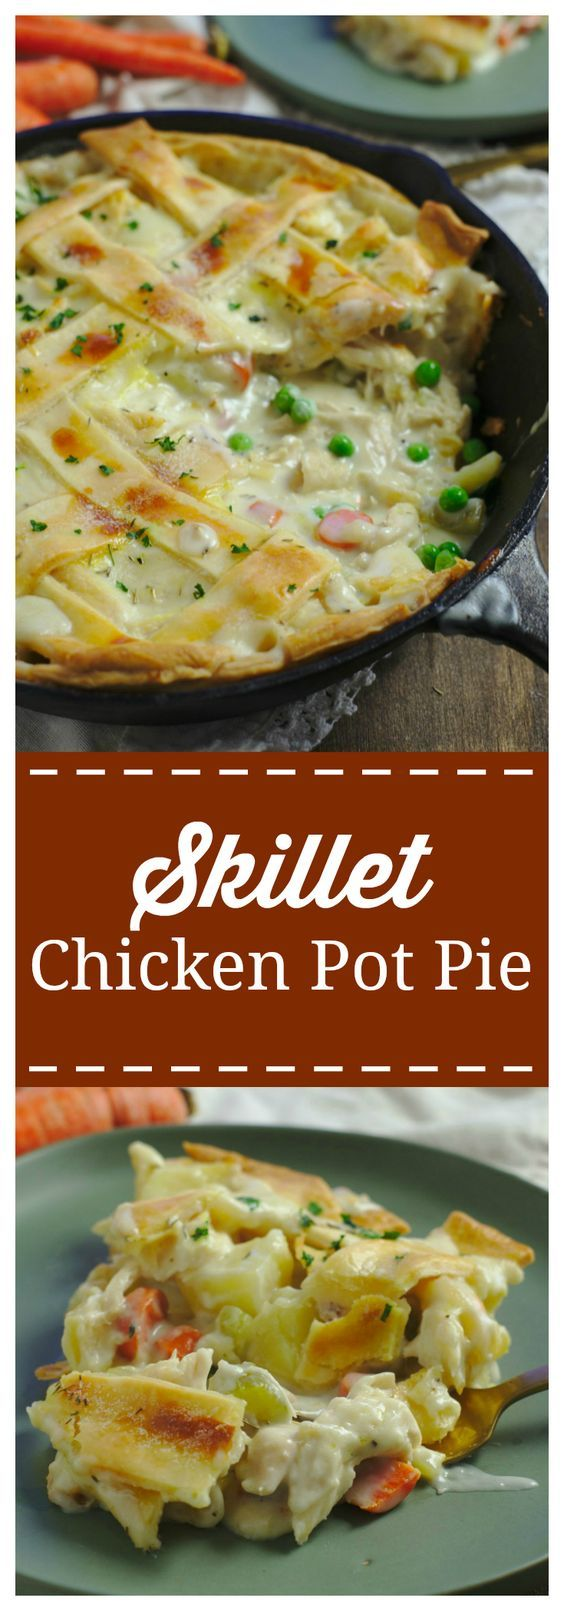 Skillet Chicken Pot Pie – The ultimate comfort food made right in a skillet! Chicken combined with carrots, celery, potatoes, peas and topped with a thick and creamy homemade gravy. Easy and so delicious! #comfortfood #chicken #pie #dinner